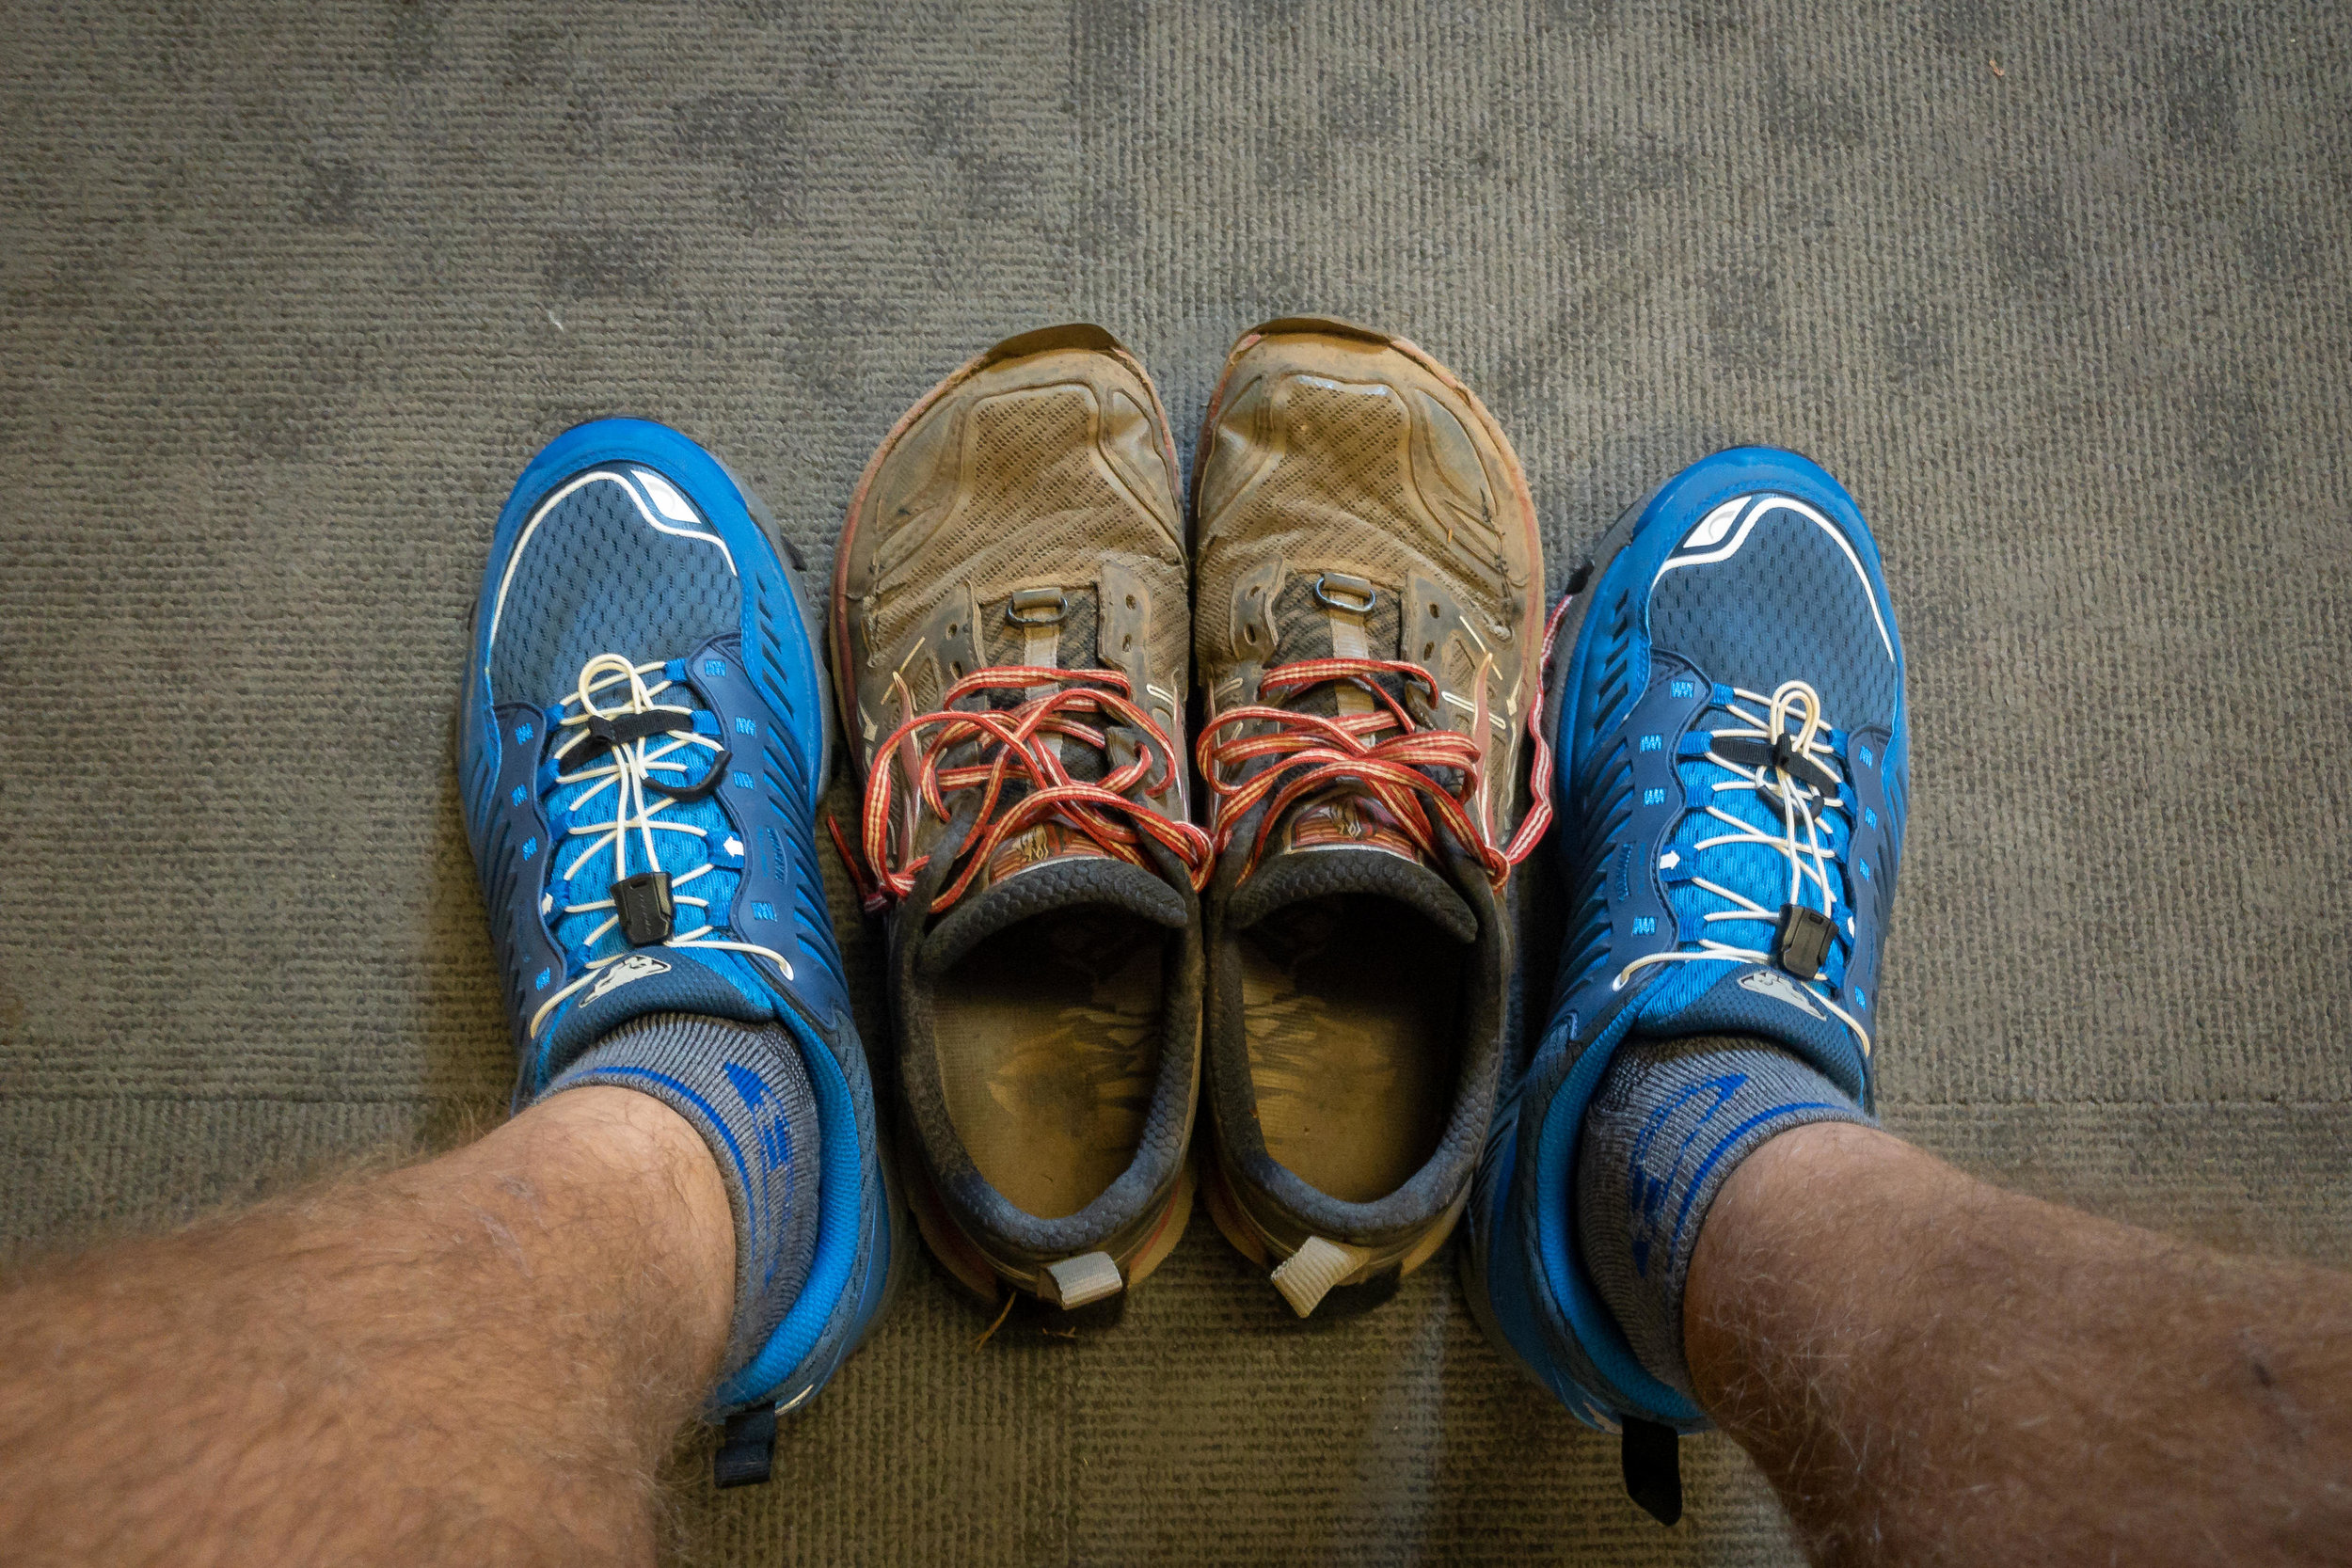 New vs old shoes.